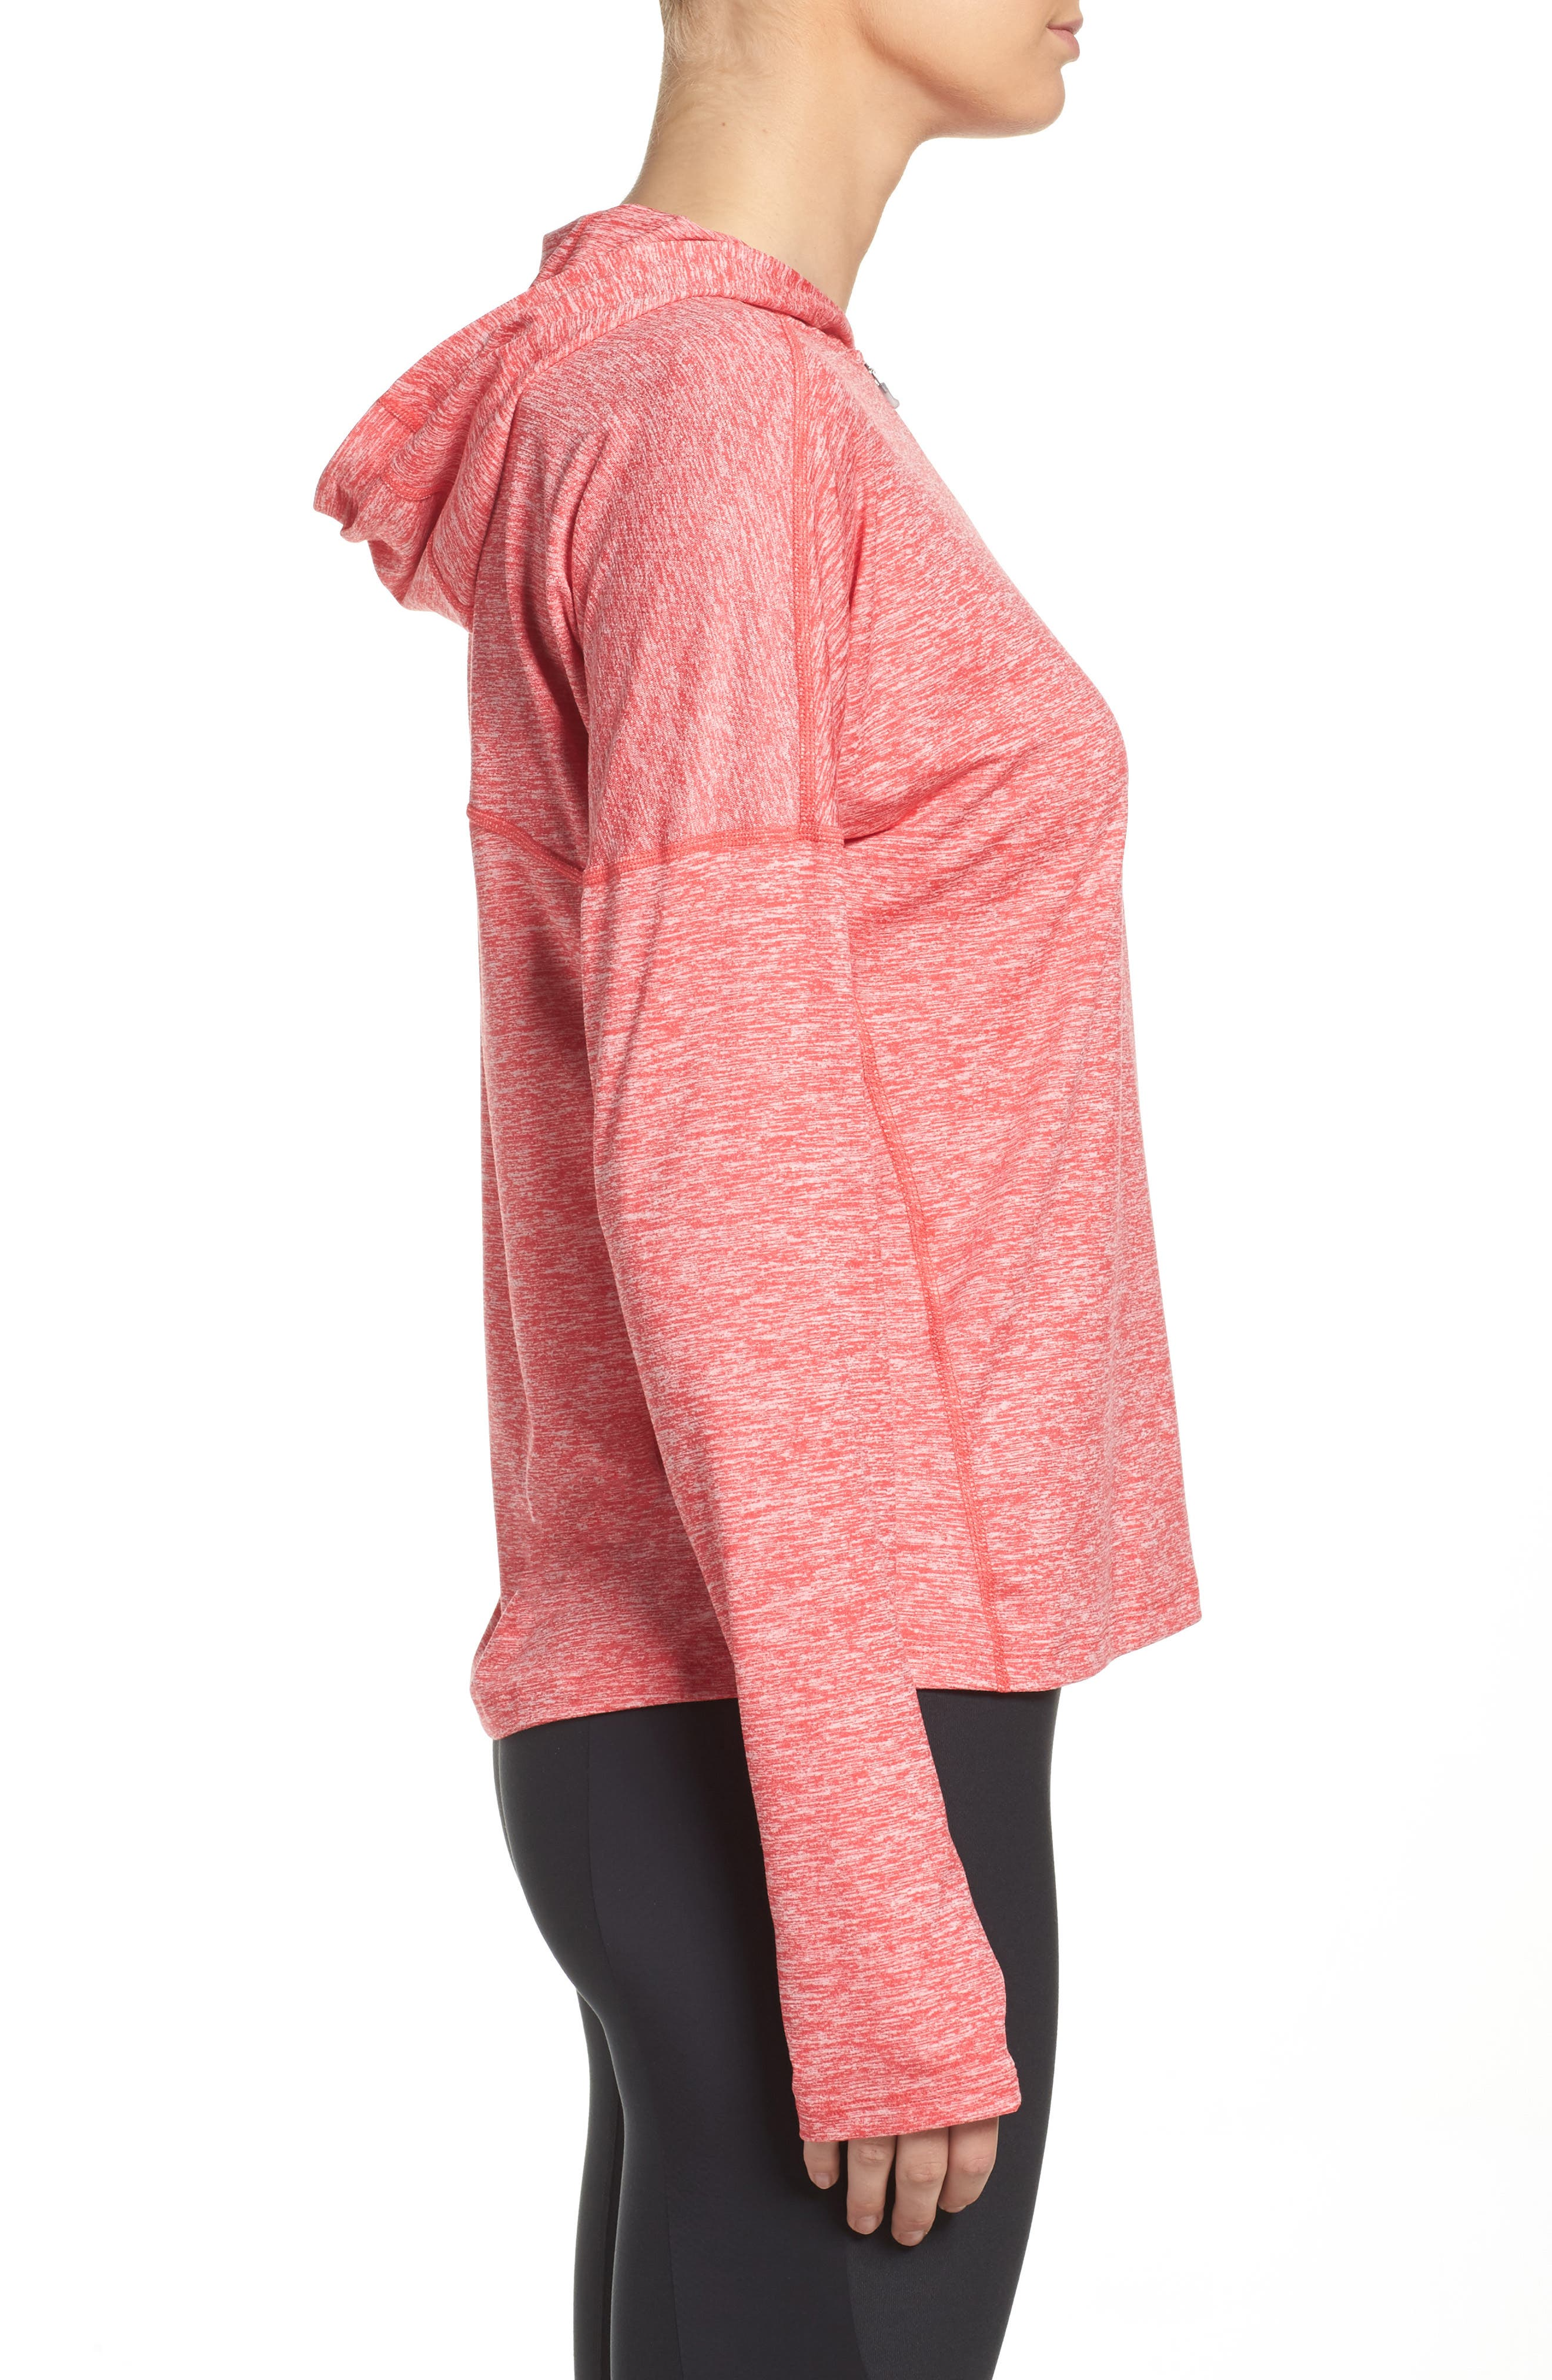 Dry Element Running Hoodie,                             Alternate thumbnail 3, color,                             Light Fusion Red/ Heather